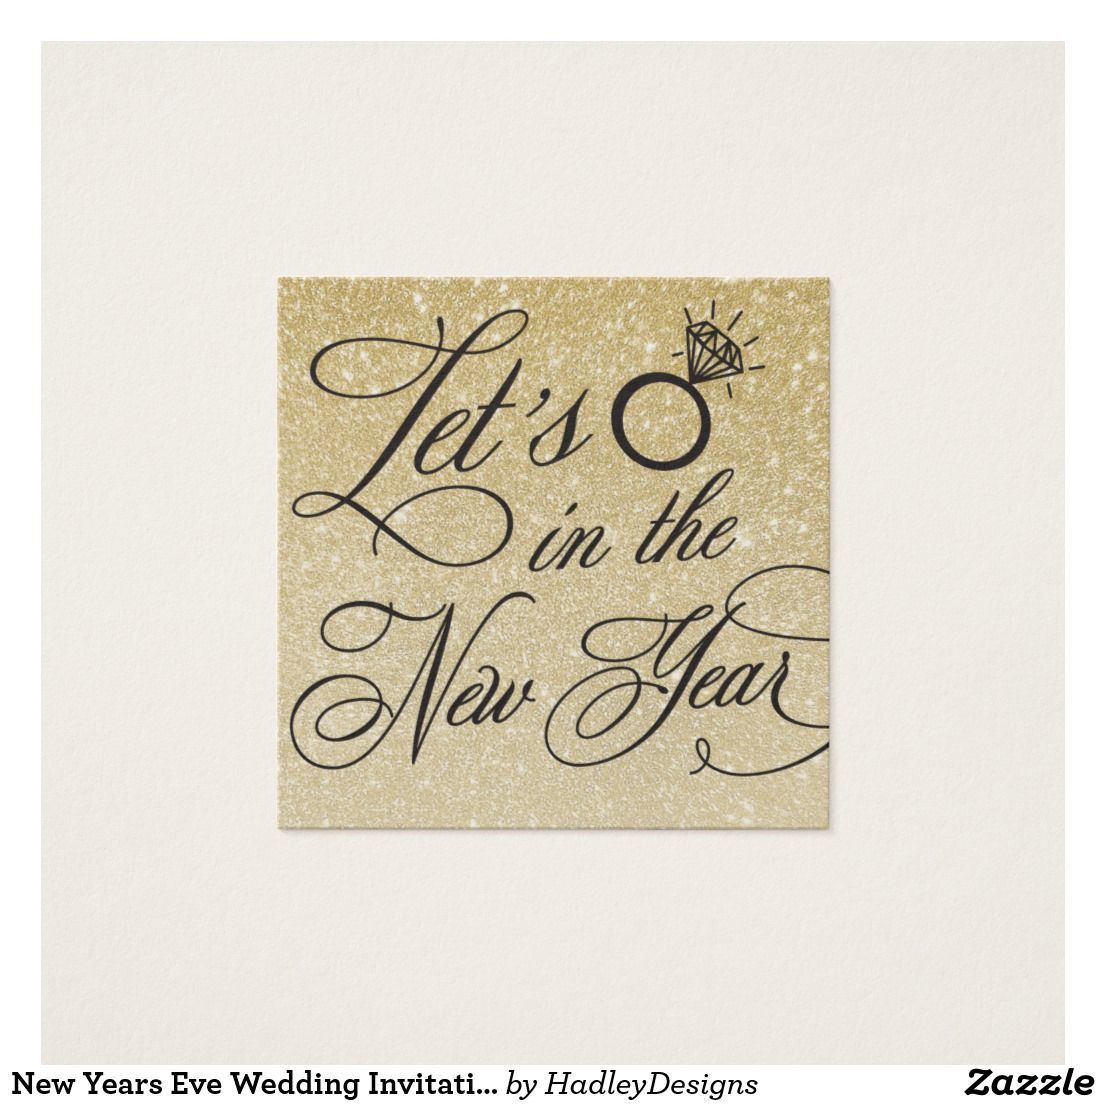 New Years Eve Wedding Invitation Name Plate Card | Favors, Weddings ...